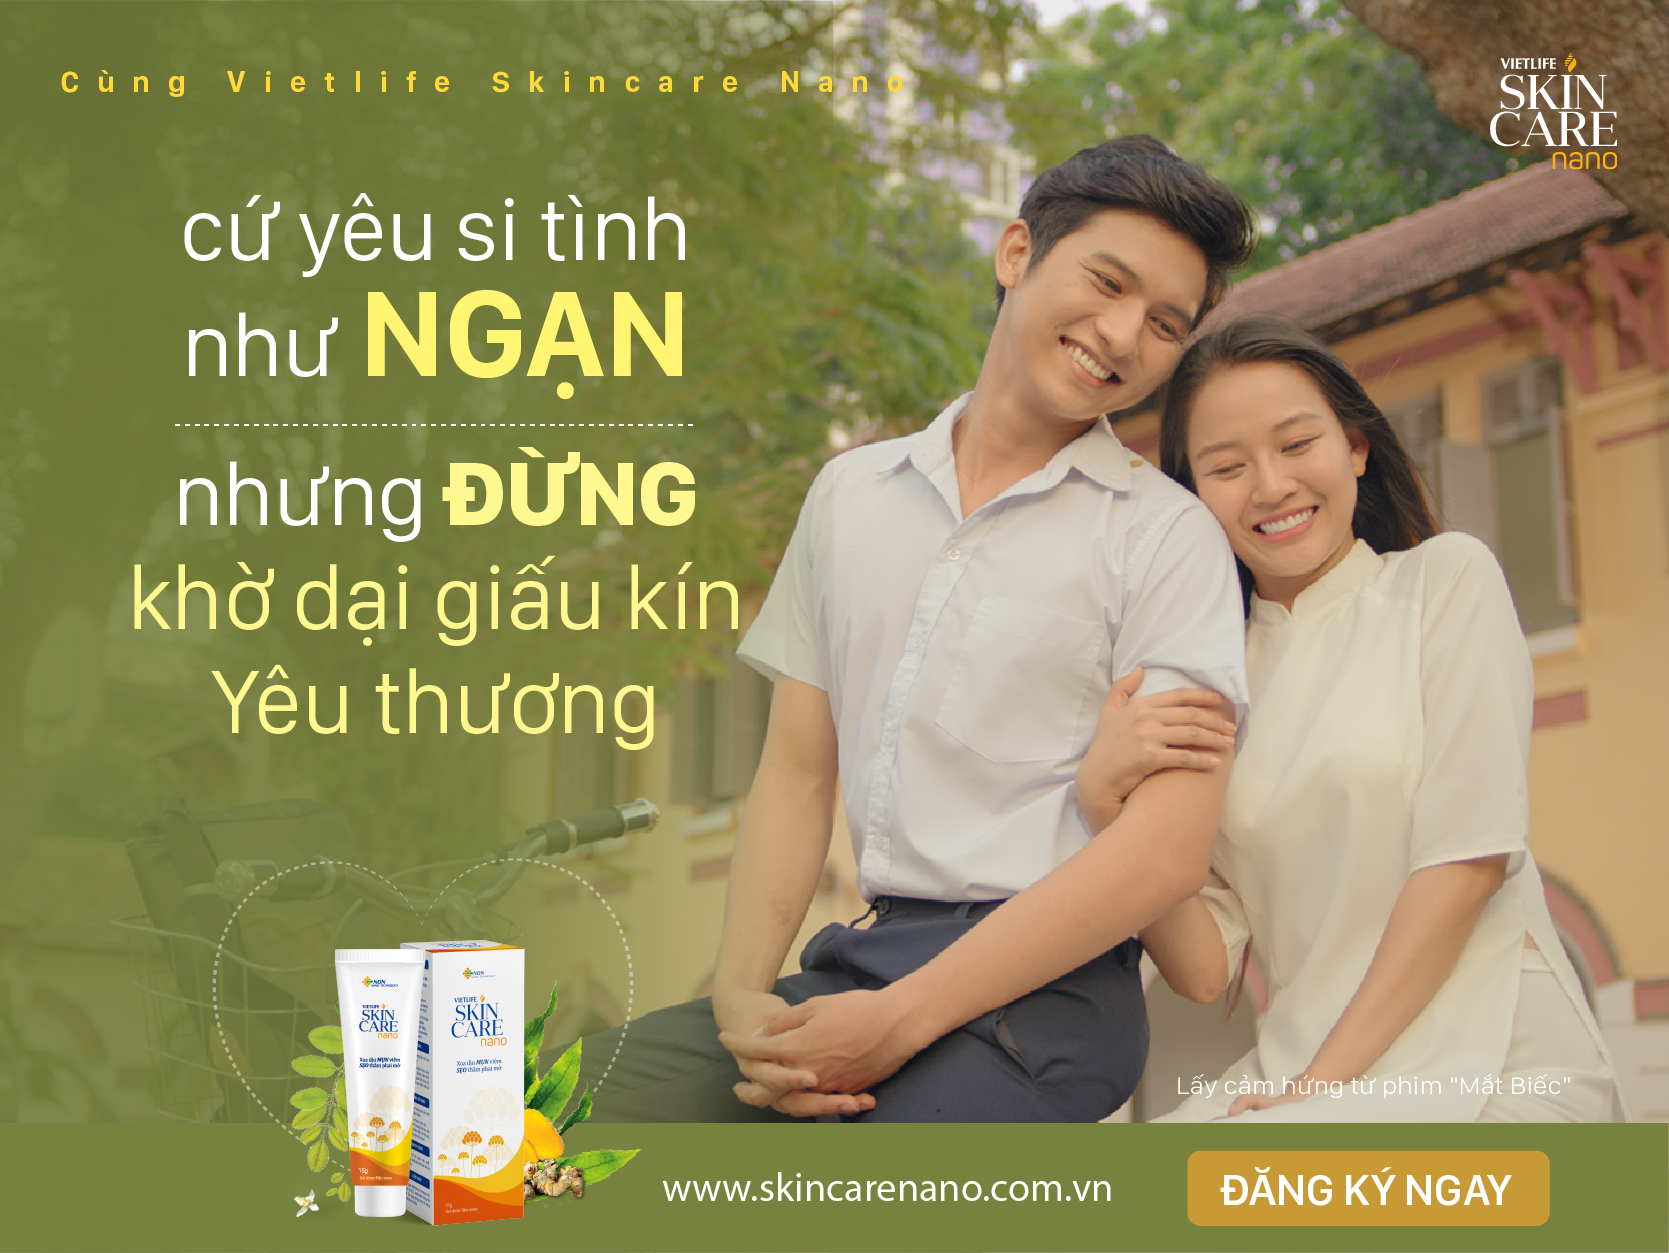 TVC Chiến dịch